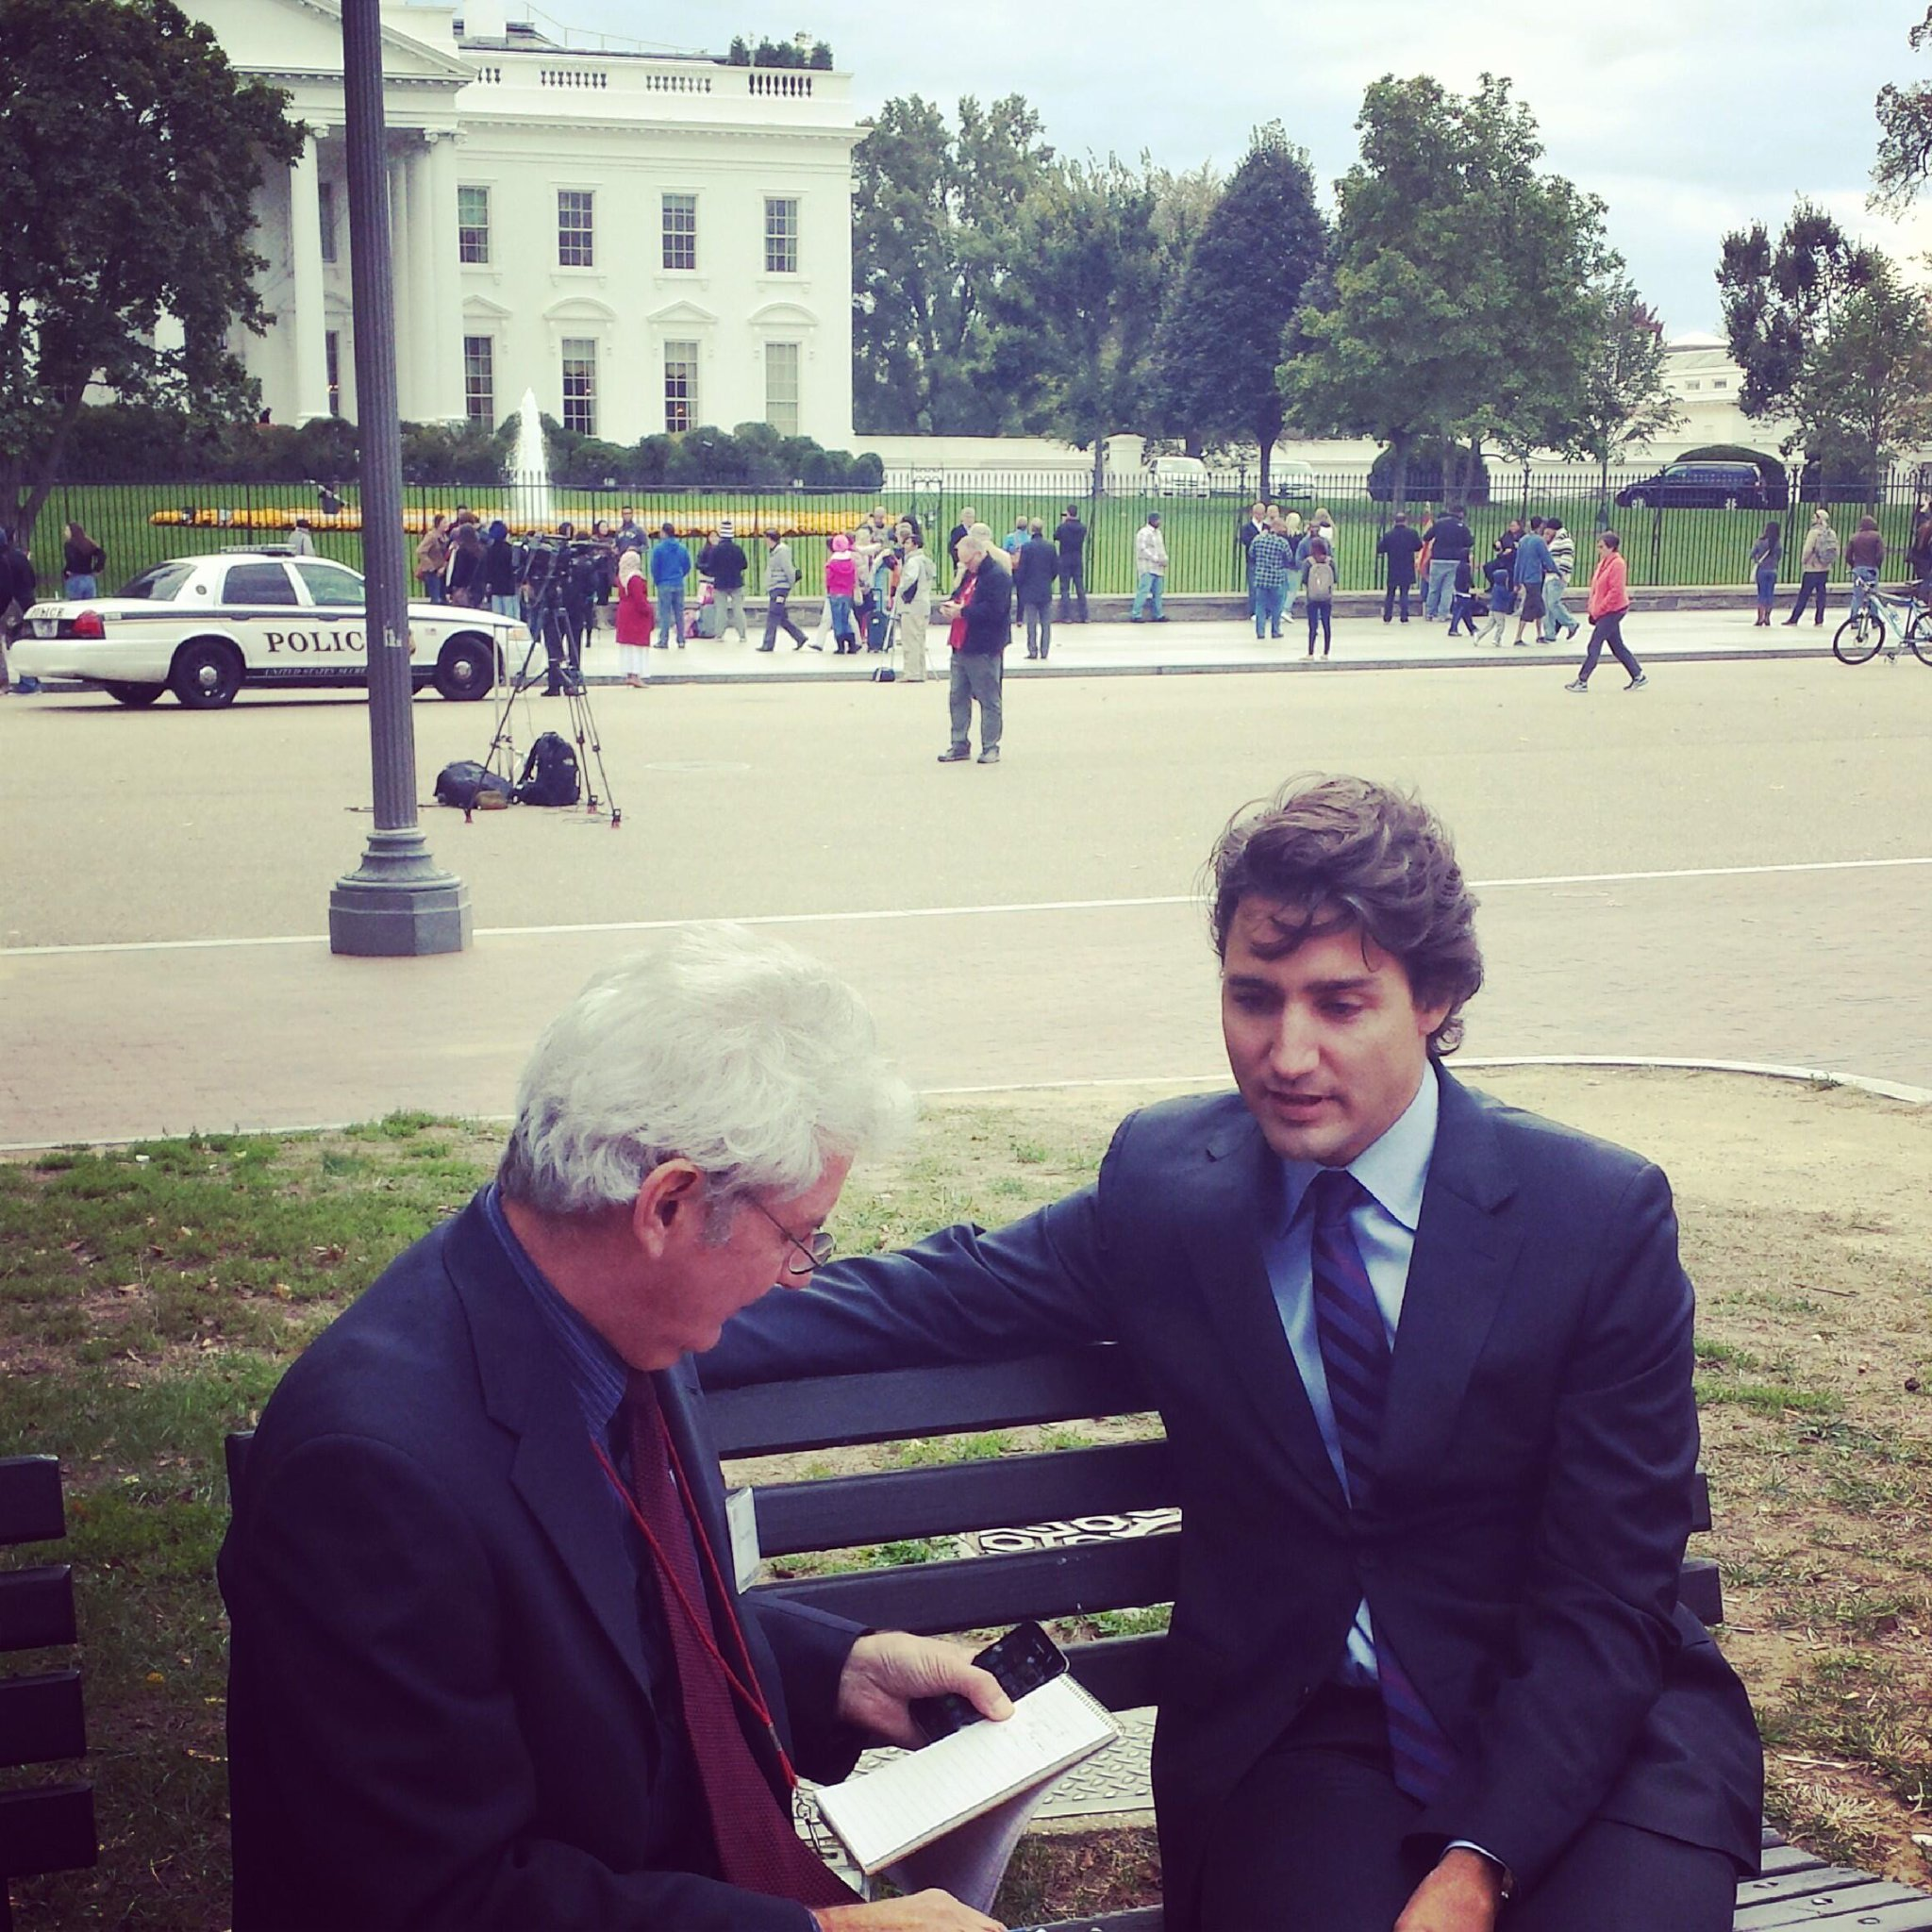 RT @gmbutts: Here's .@JustinTrudeau doing an iview with @globeandmail before we mtg w President Obama's economic team #cdnpoli http://t.co/2lLRSBOQ1r